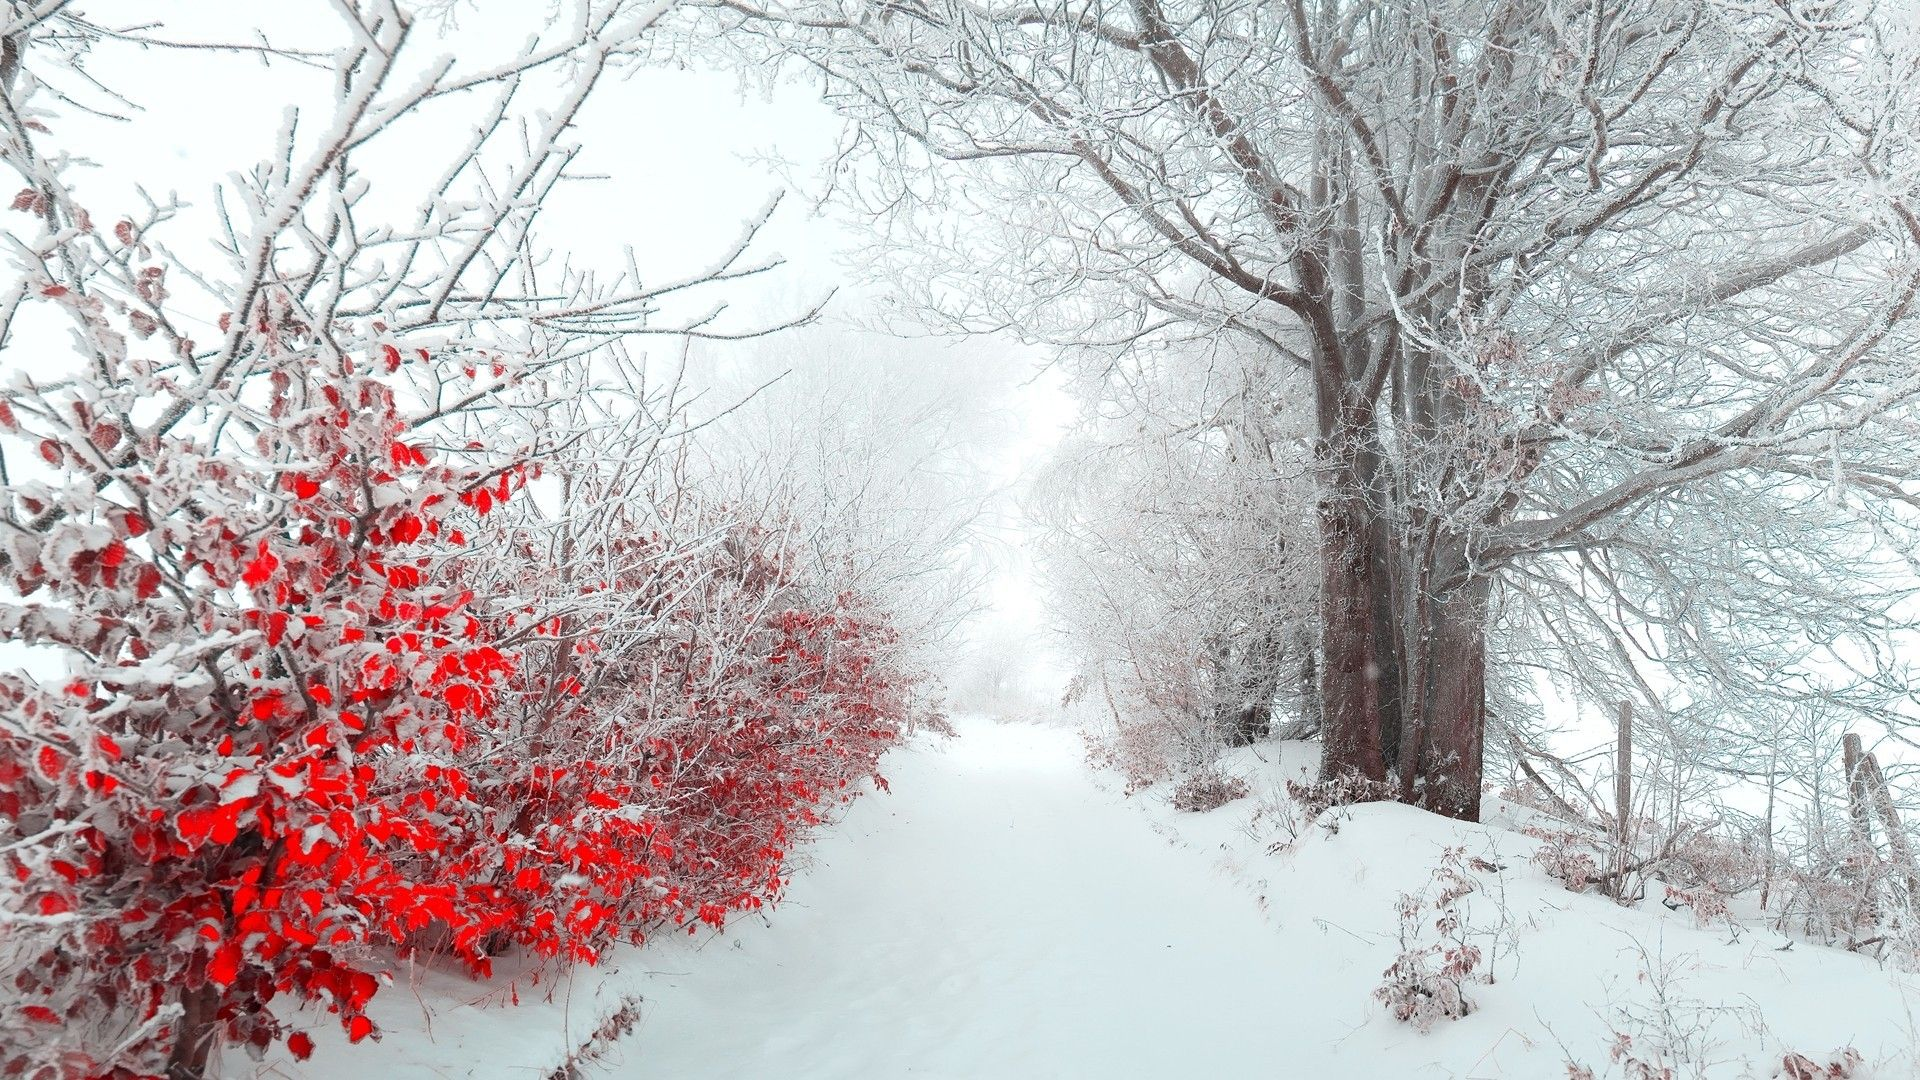 Winter Snow Trees Red White Flowers Pathway Wallpaper Winter Wallpaper Winter Wallpaper Hd Christmas Landscape